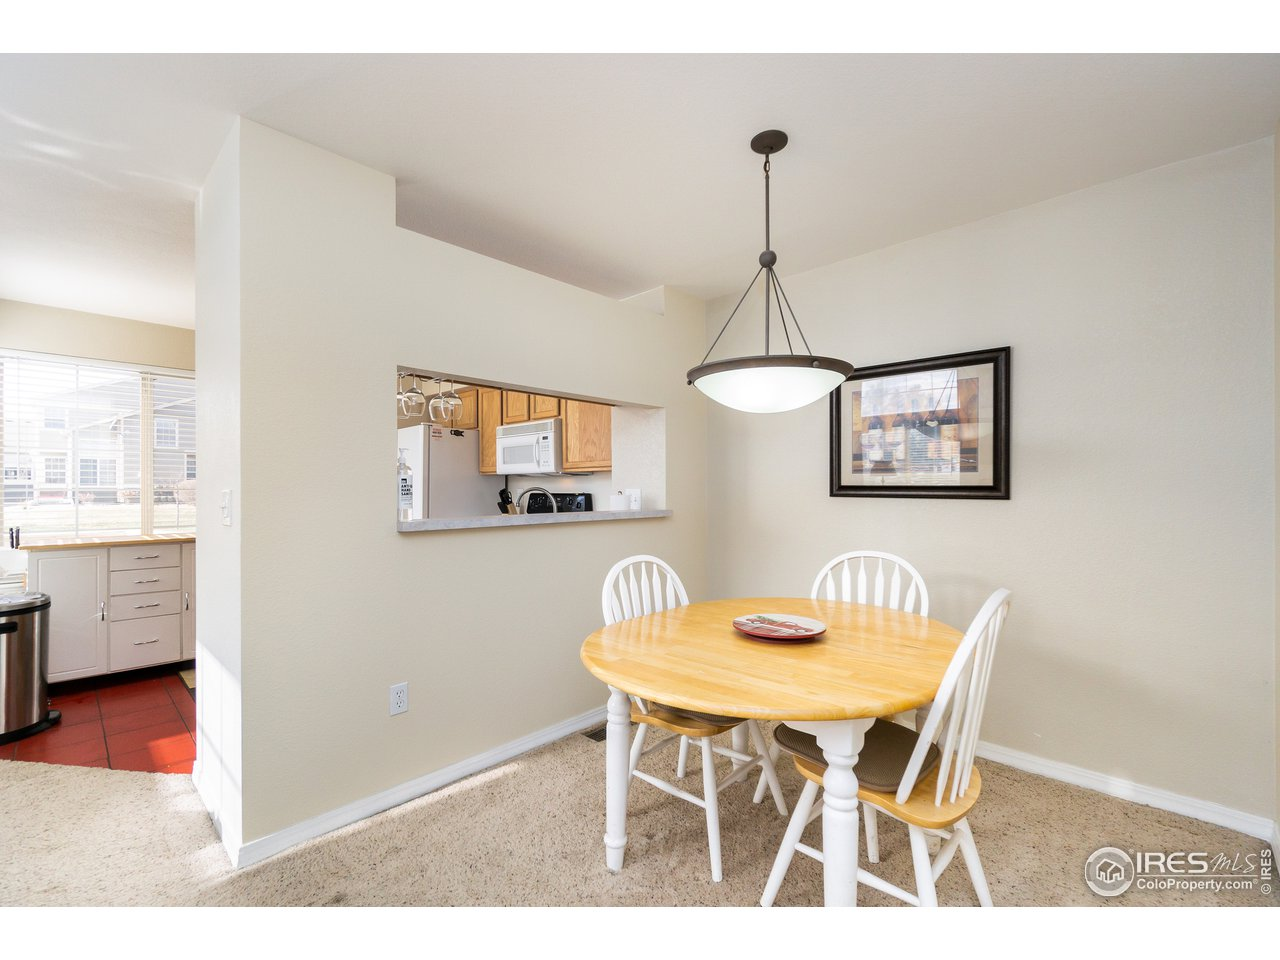 Separate dining and kitchen pass through